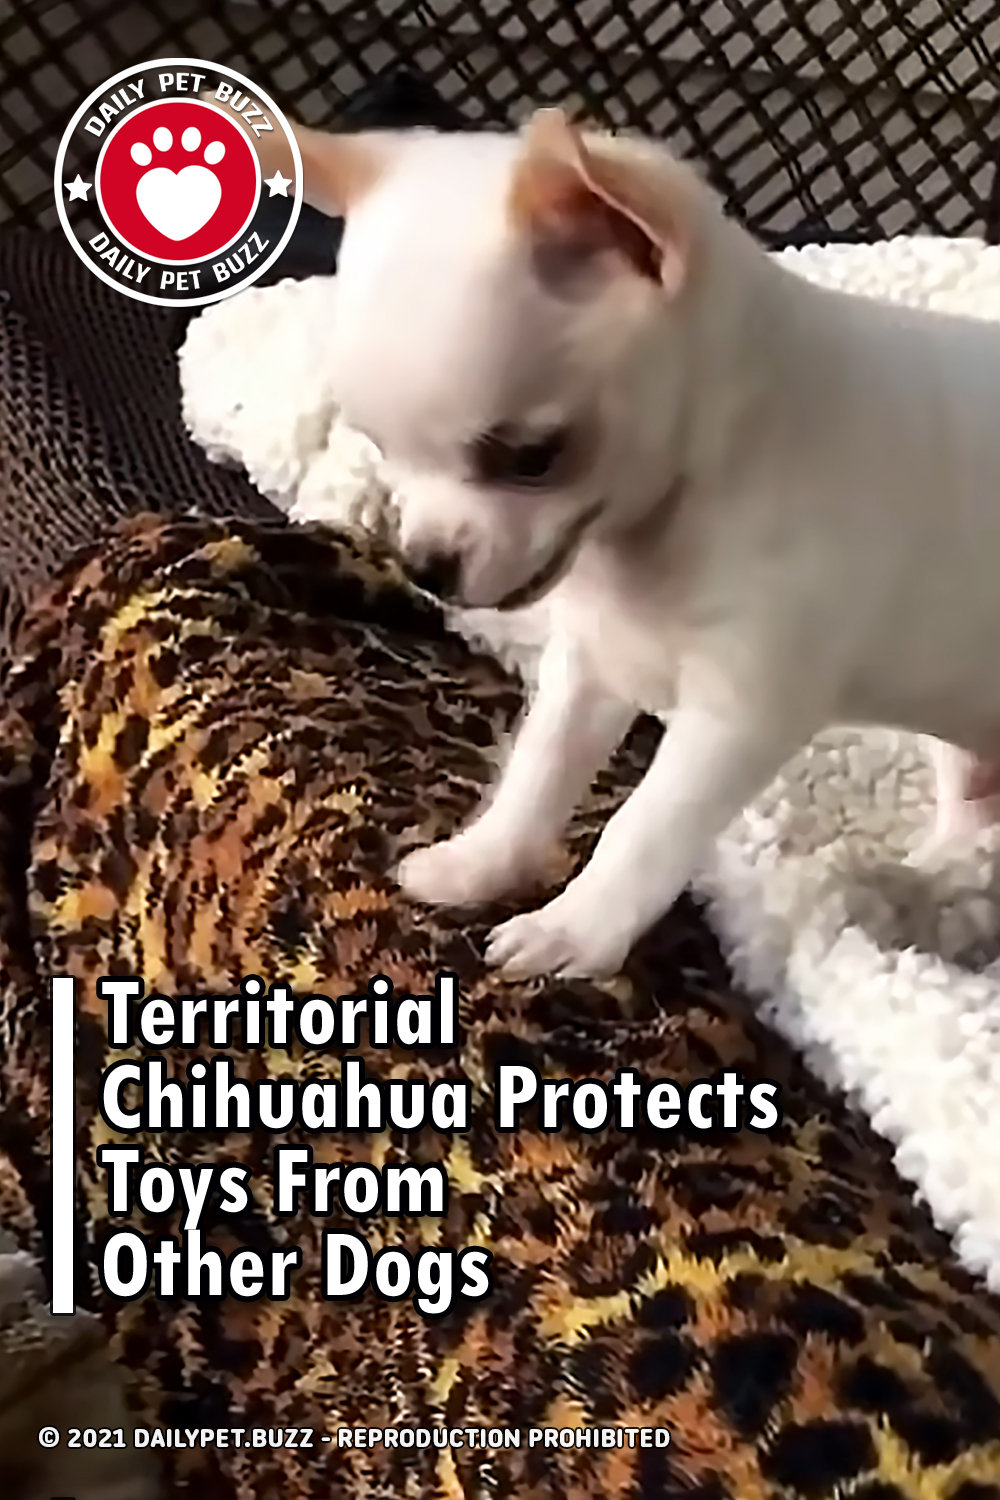 Territorial Chihuahua Protects Toys From Other Dogs